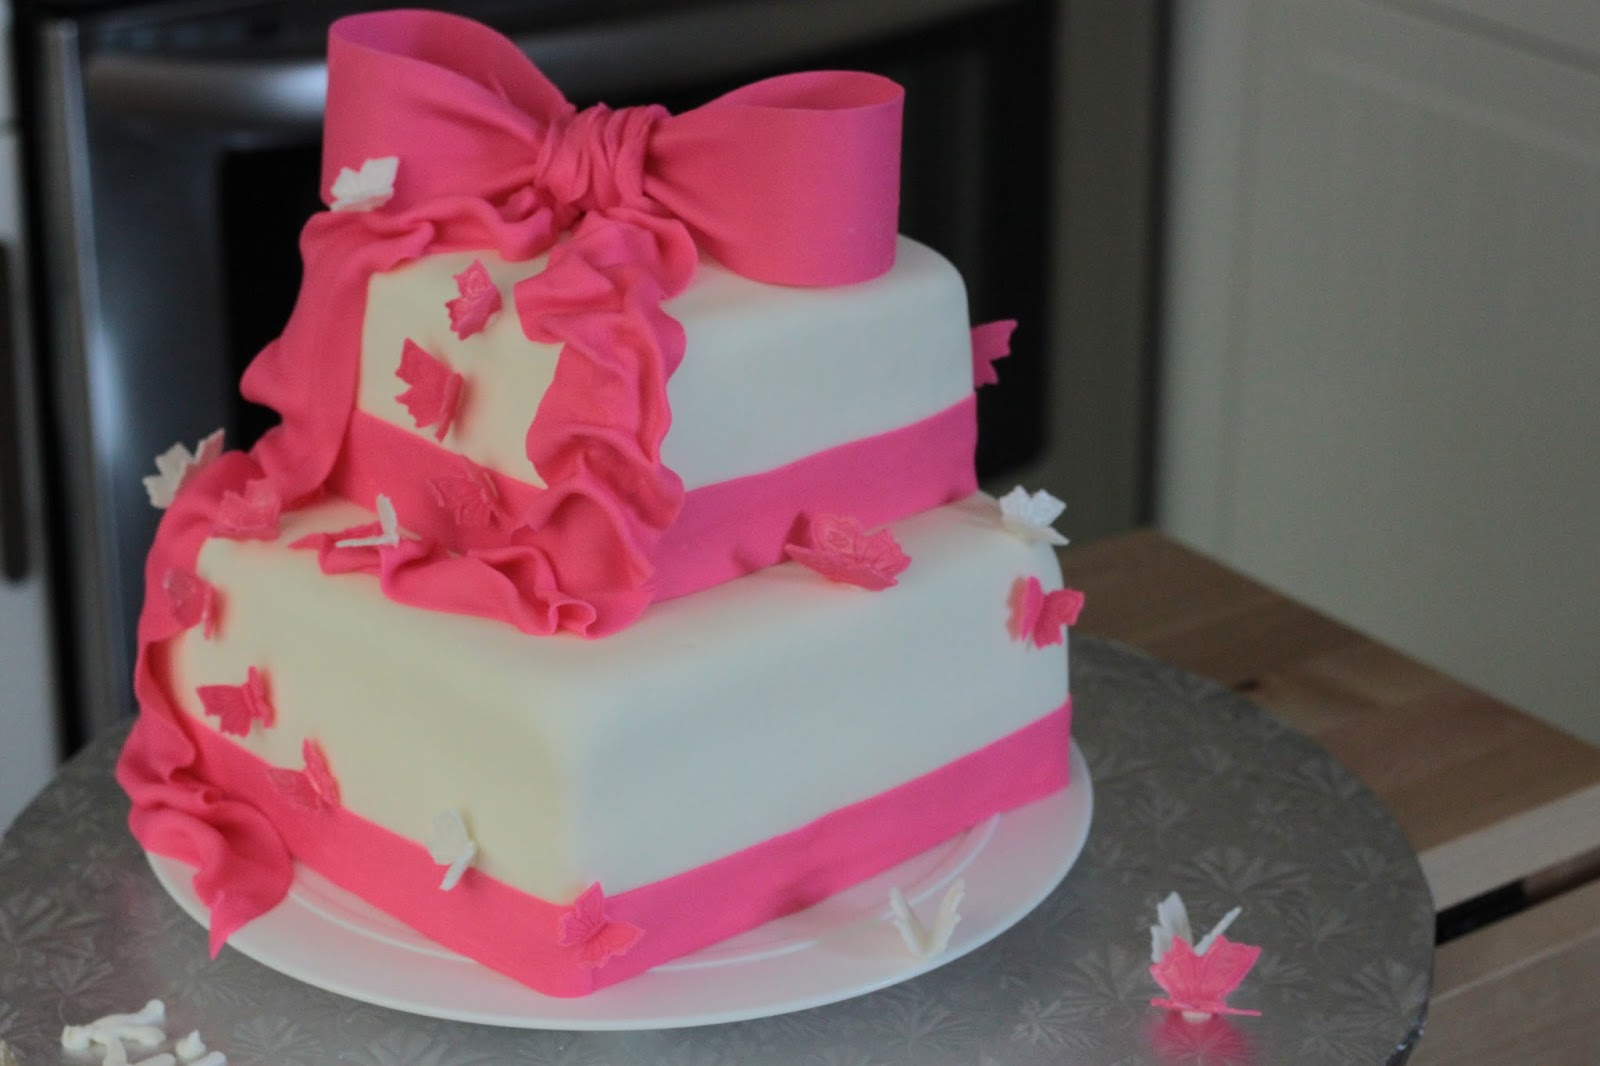 cakes by nika, why not?